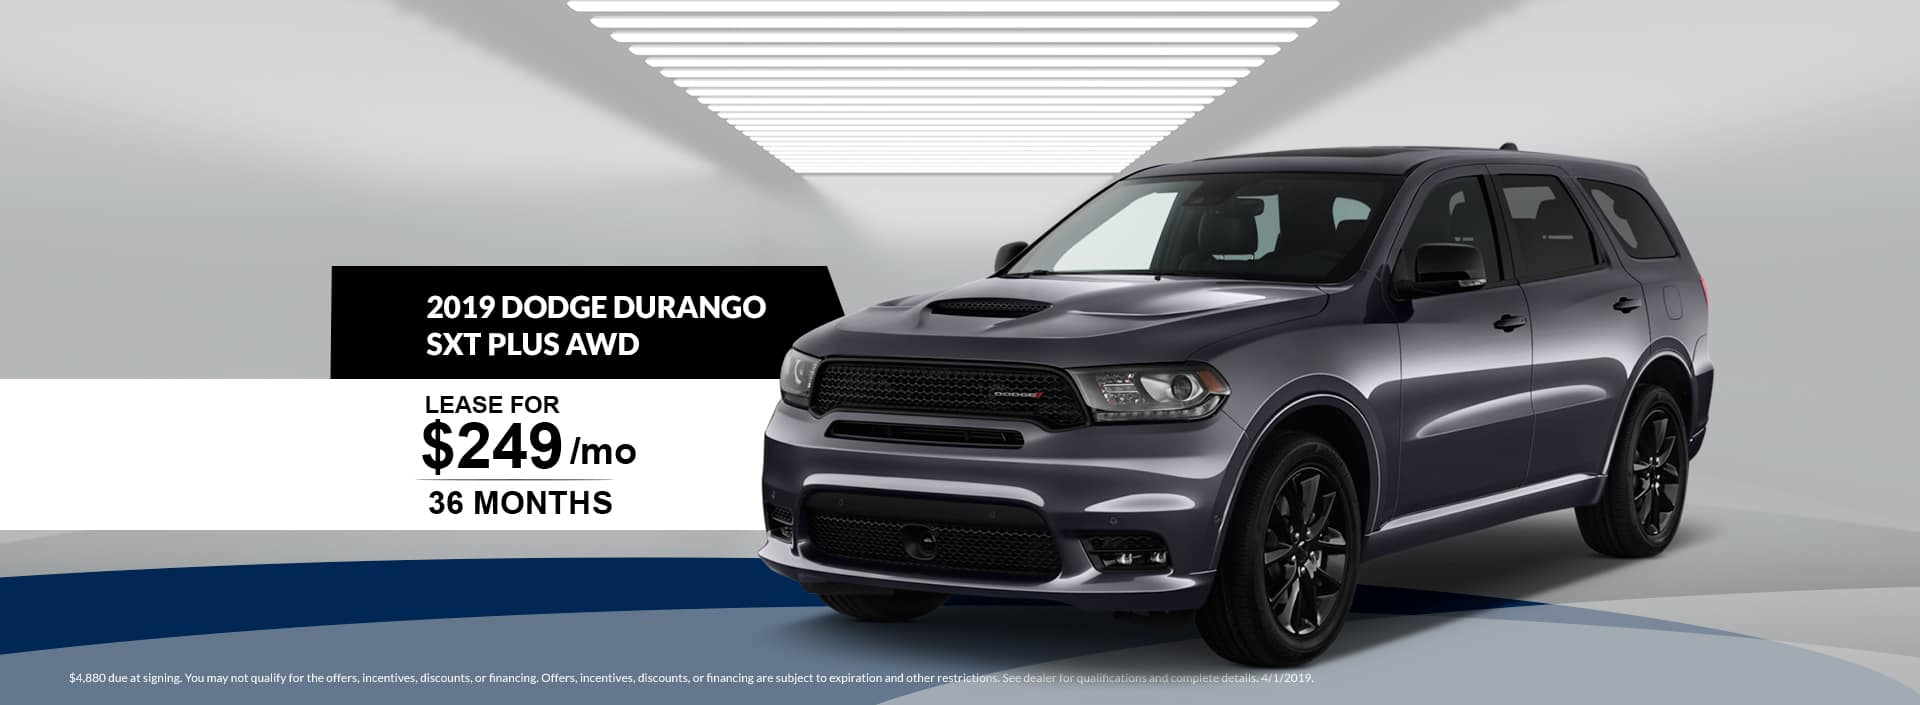 2098 Dodge Durango SXT Plus AWD Lease Special at Waseca Dodge in Waseca, MN